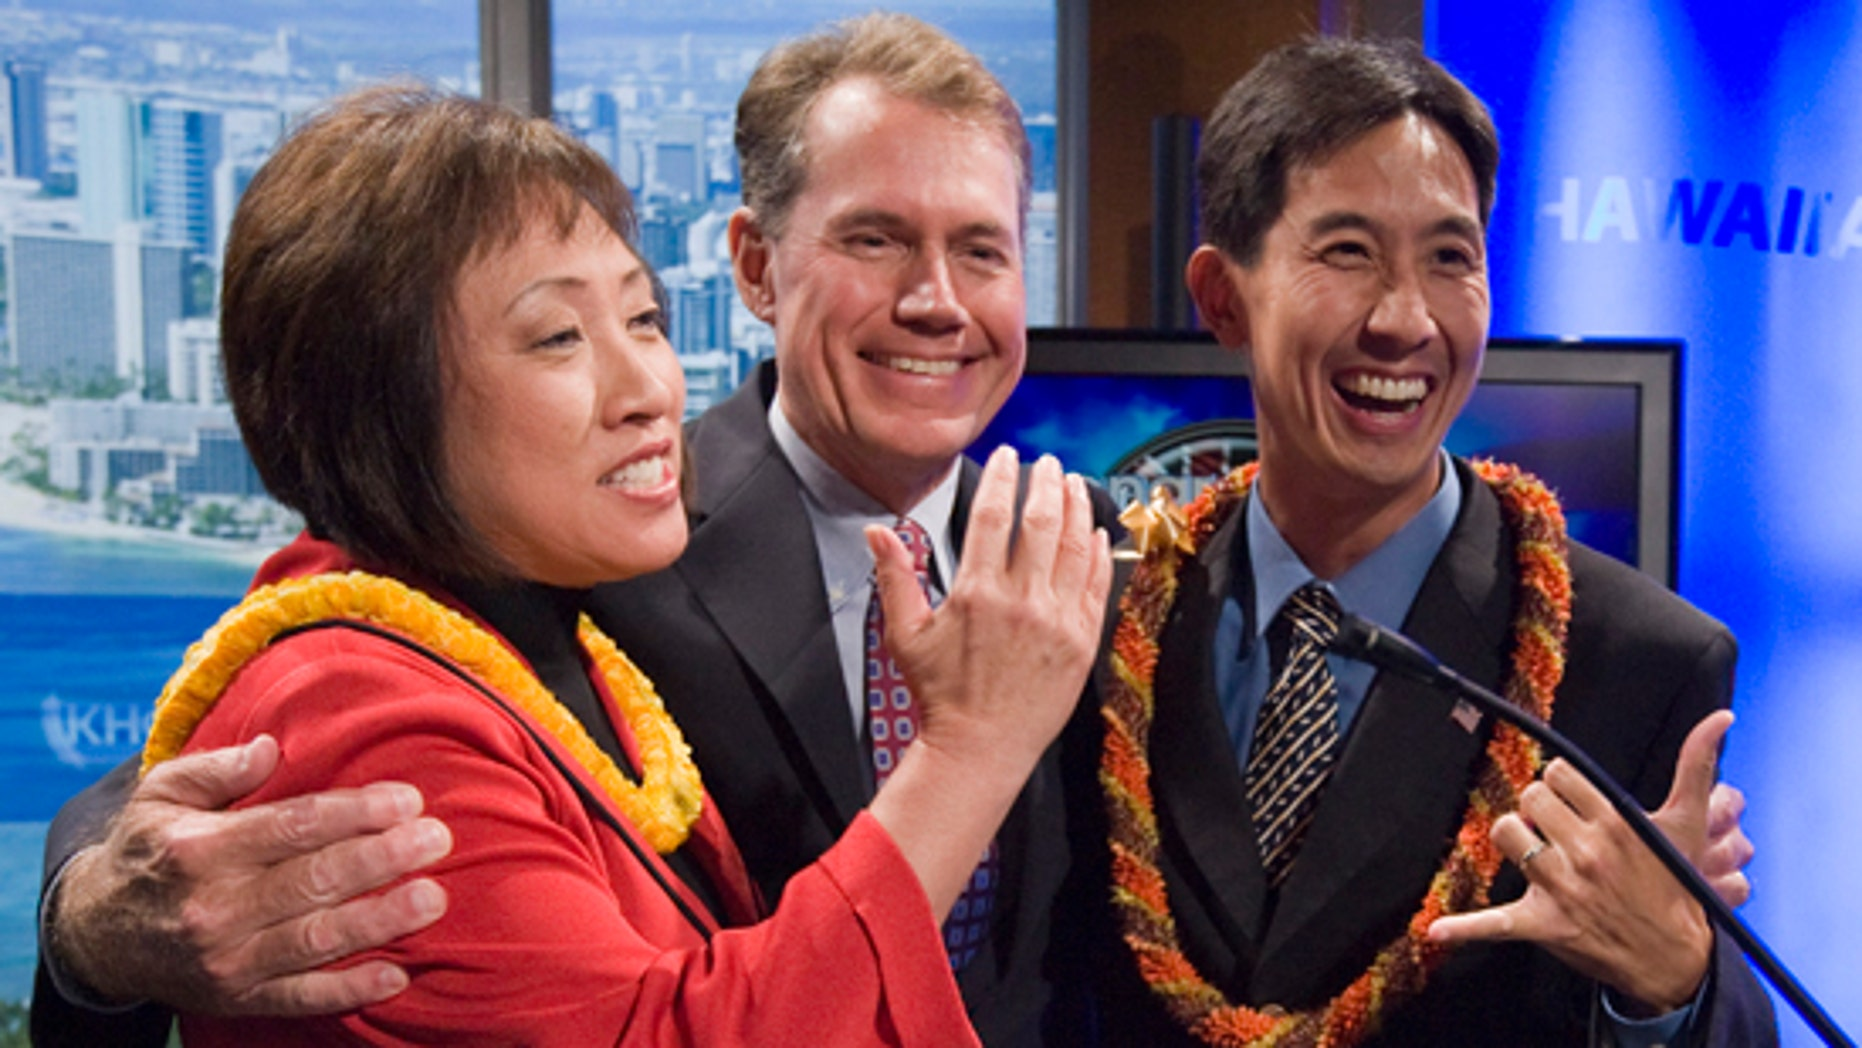 In this Friday, May 14, 2010 picture, Hawaii State Senate President Colleen Hanabusa, left, former U.S. Rep. Ed Case, center, both Democrats and Republican Honolulu City Councilman Charles Djou, right, embrace each other after patricipating in a debate at the KHON2 television studios in Honolulu. (AP)